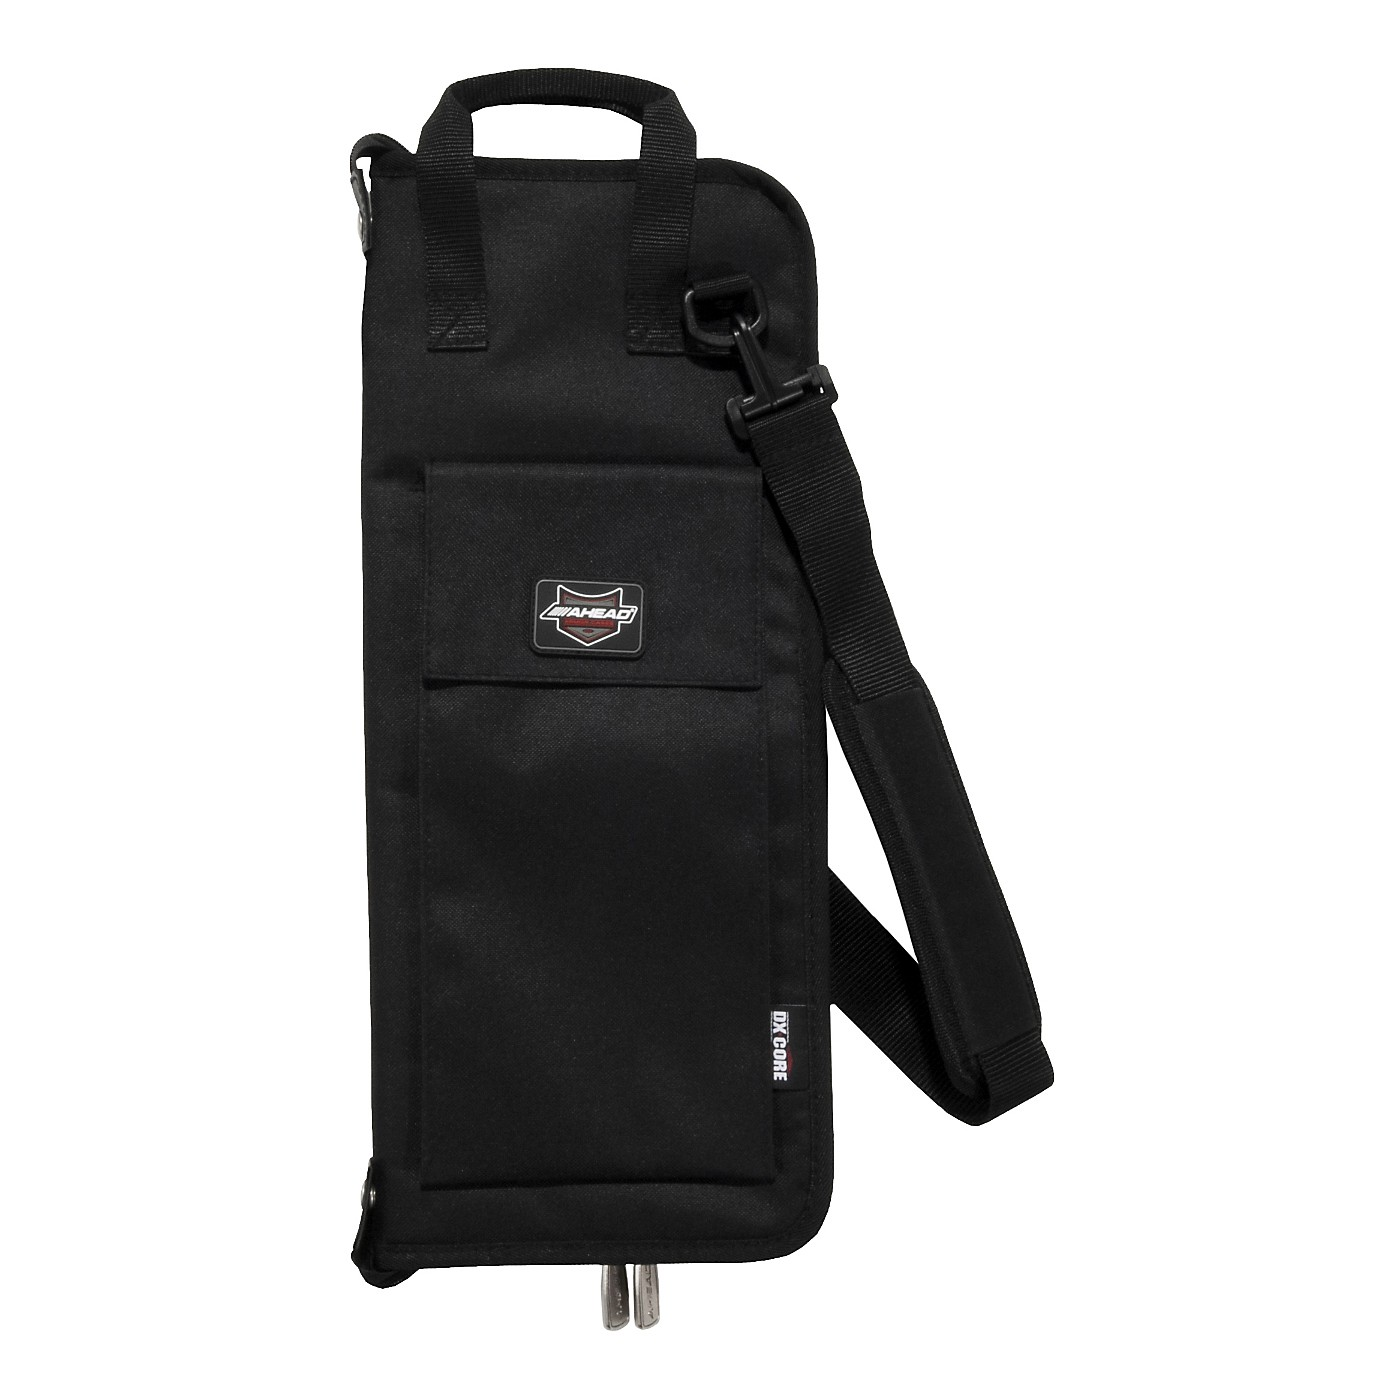 Ahead Armor Cases Deluxe Standard Stick Case with Shoulder Strap thumbnail